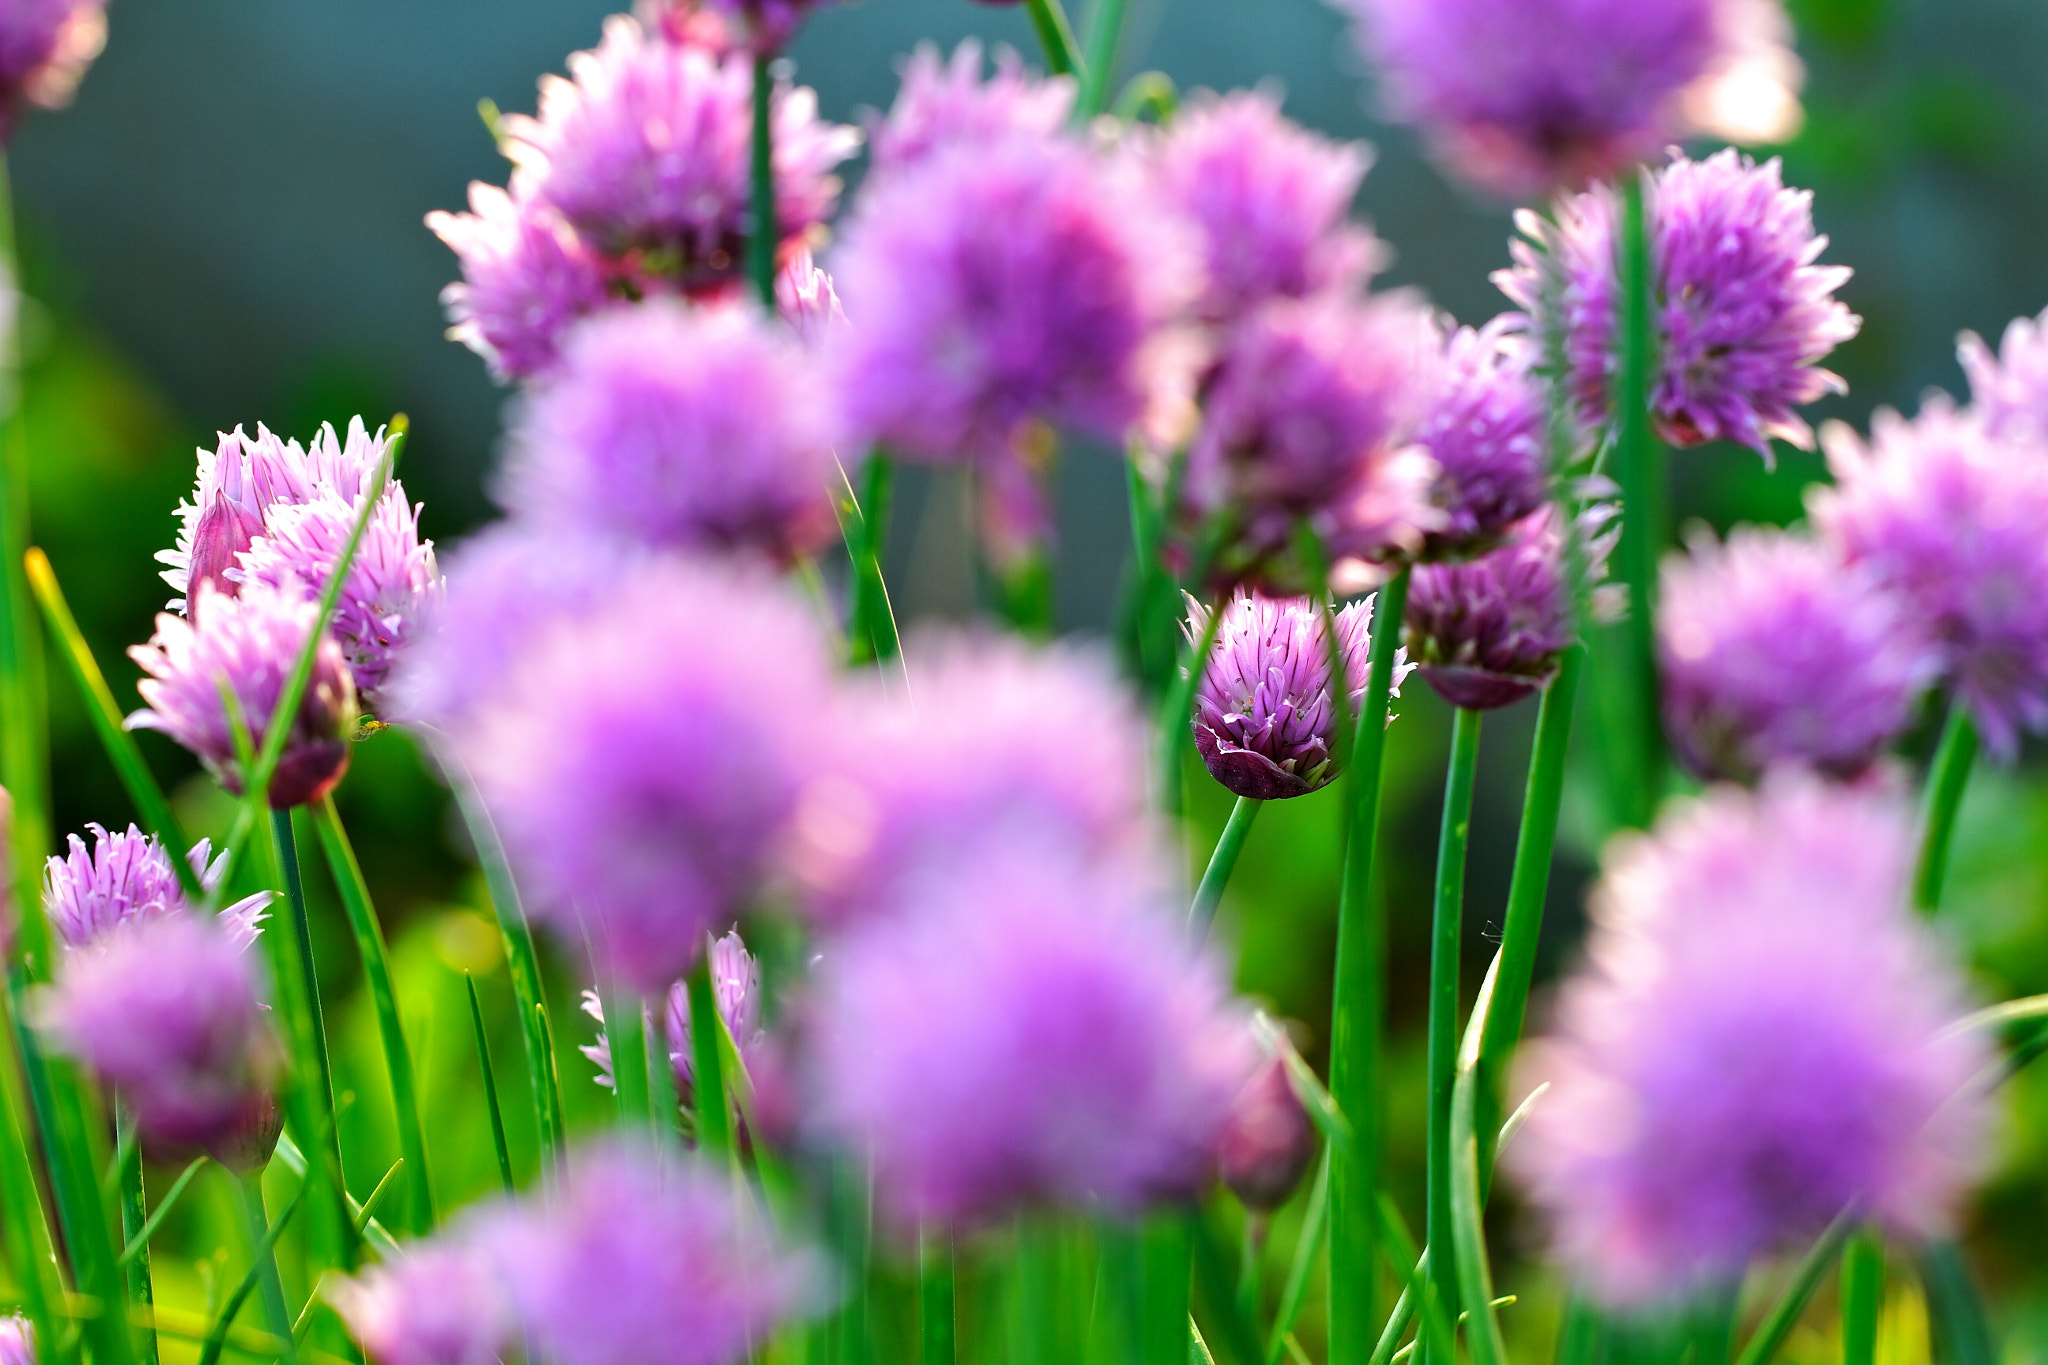 Photograph Chive by Simon Berger on 500px